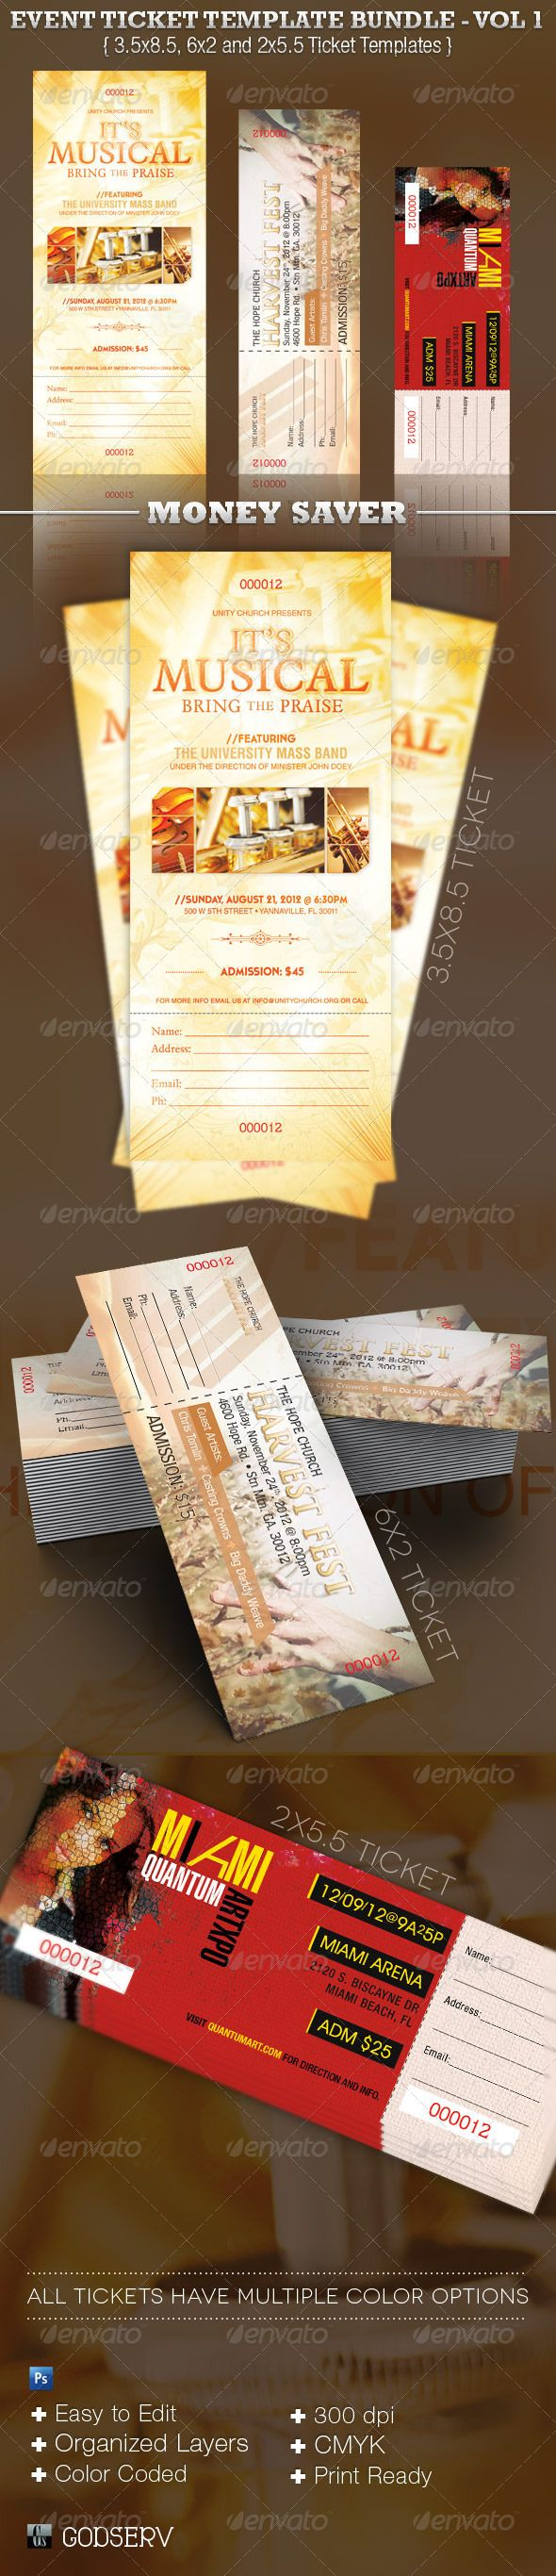 17 best ideas about ticket template my pics event ticket template bundle vol 1 miscellaneous print templates here